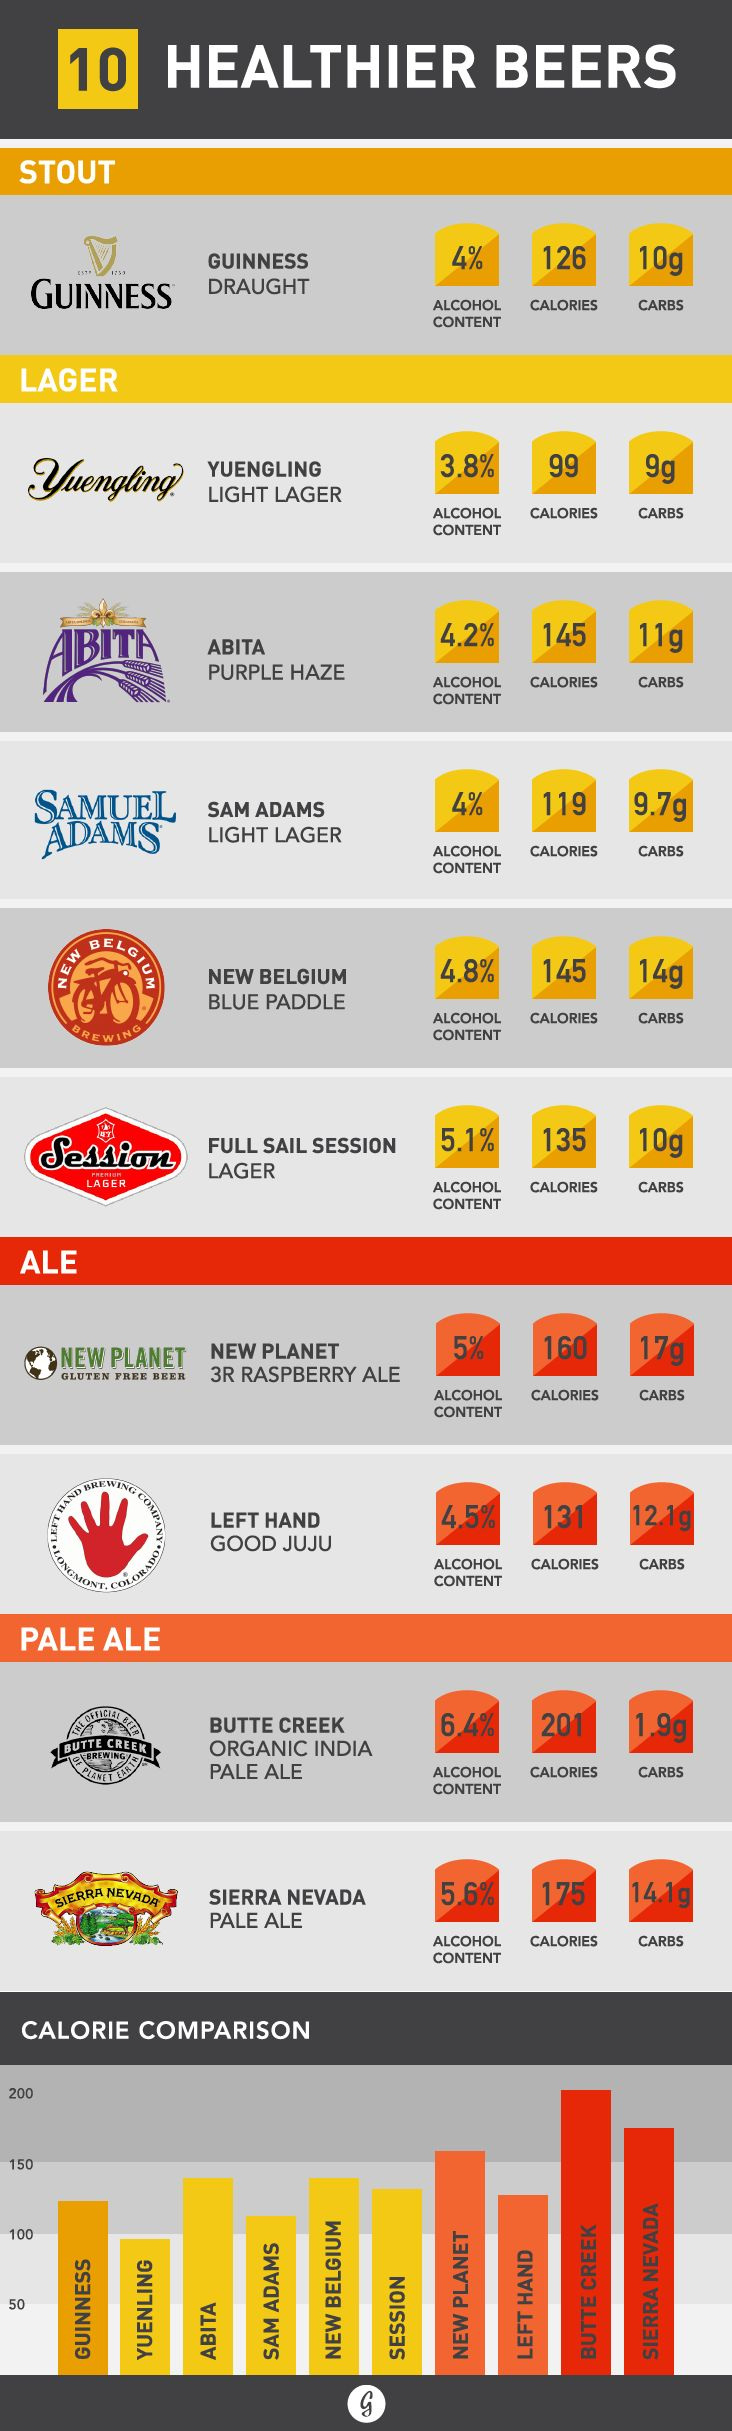 10 Healthier Beers (and How to Pick the Right One) | Greatist